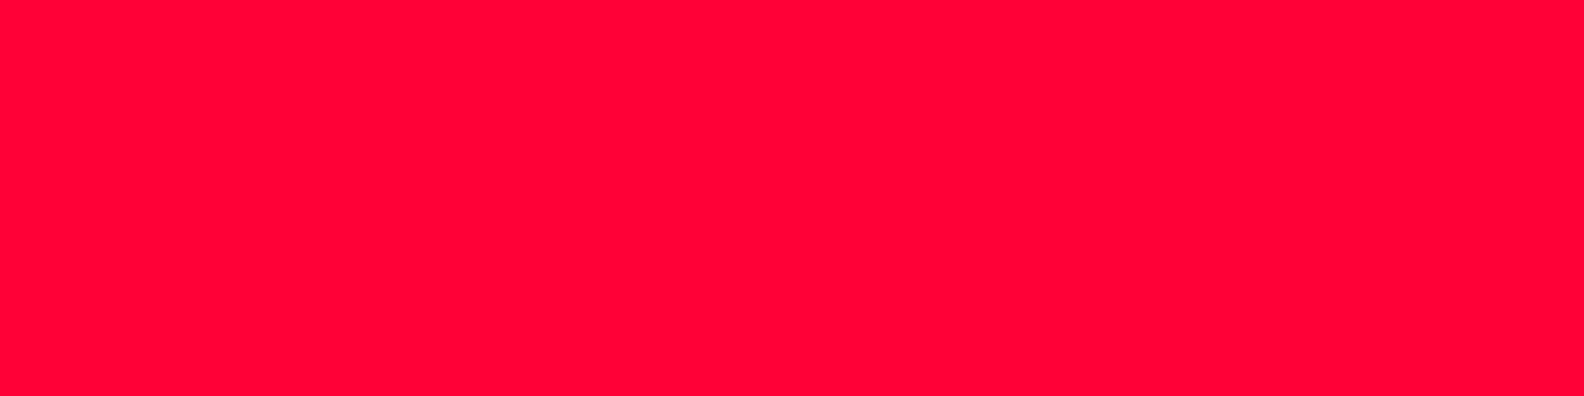 1584x396 Carmine Red Solid Color Background